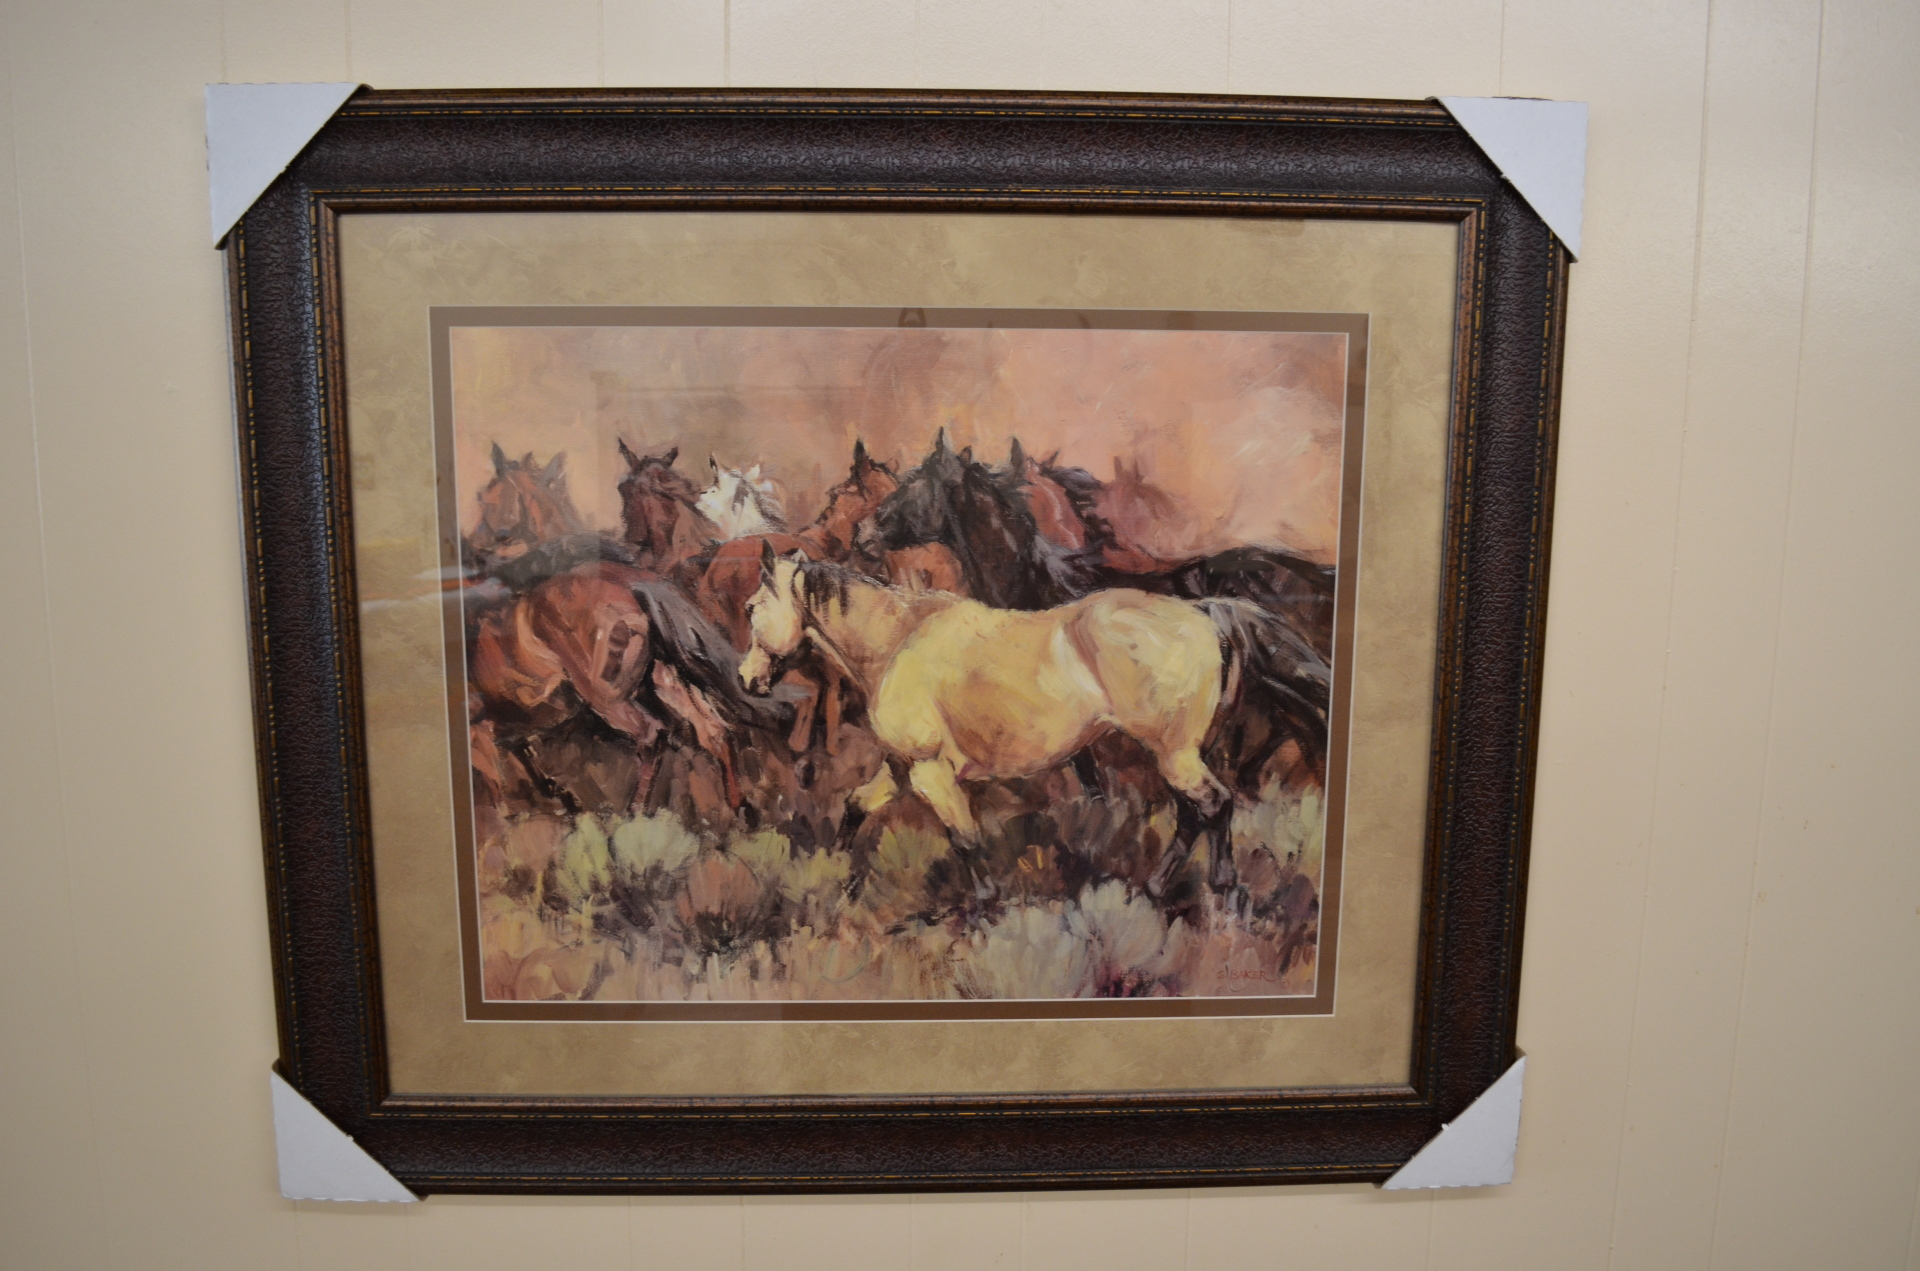 Framed Oil Painting, group of horses-$163.00